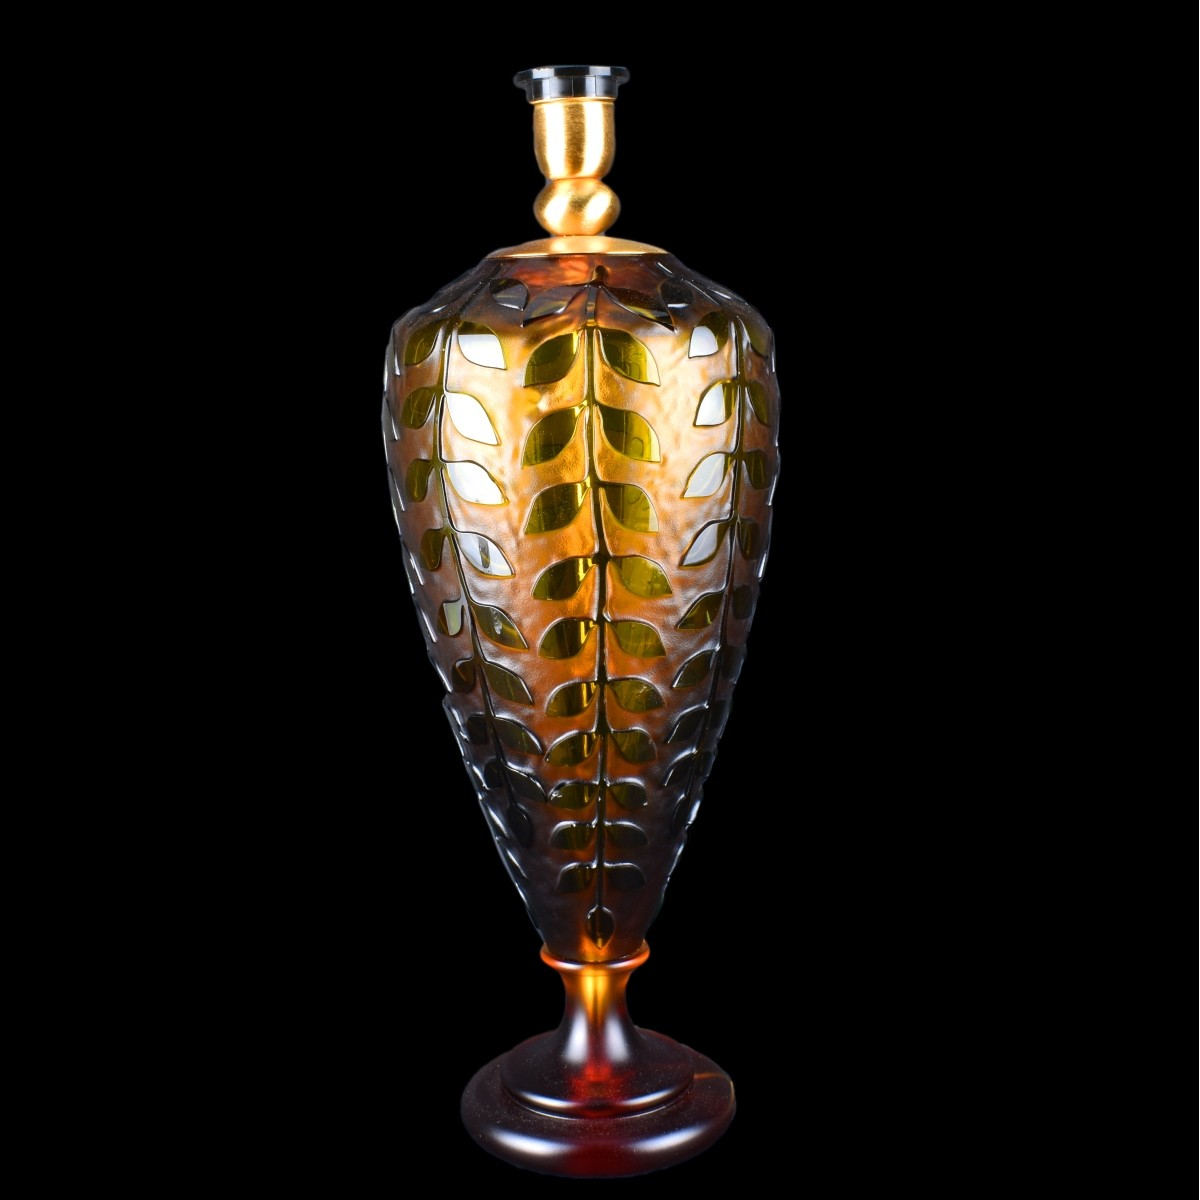 Contemporary Art Glass Lamp